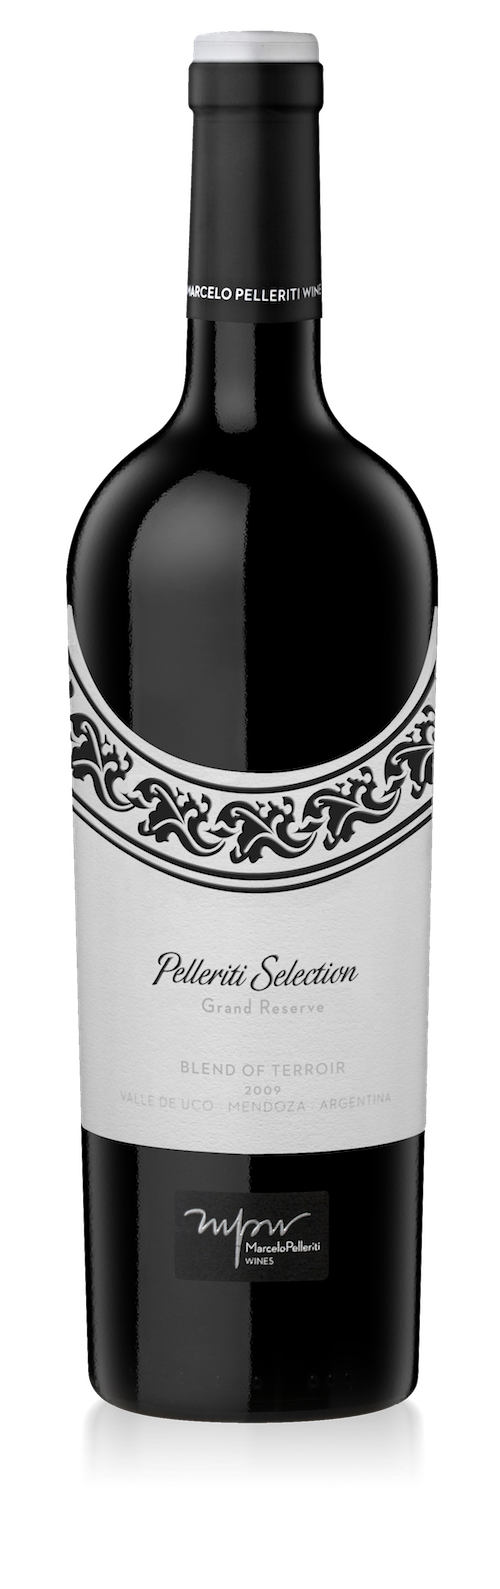 Marcelo Pelleriti Selection Blend